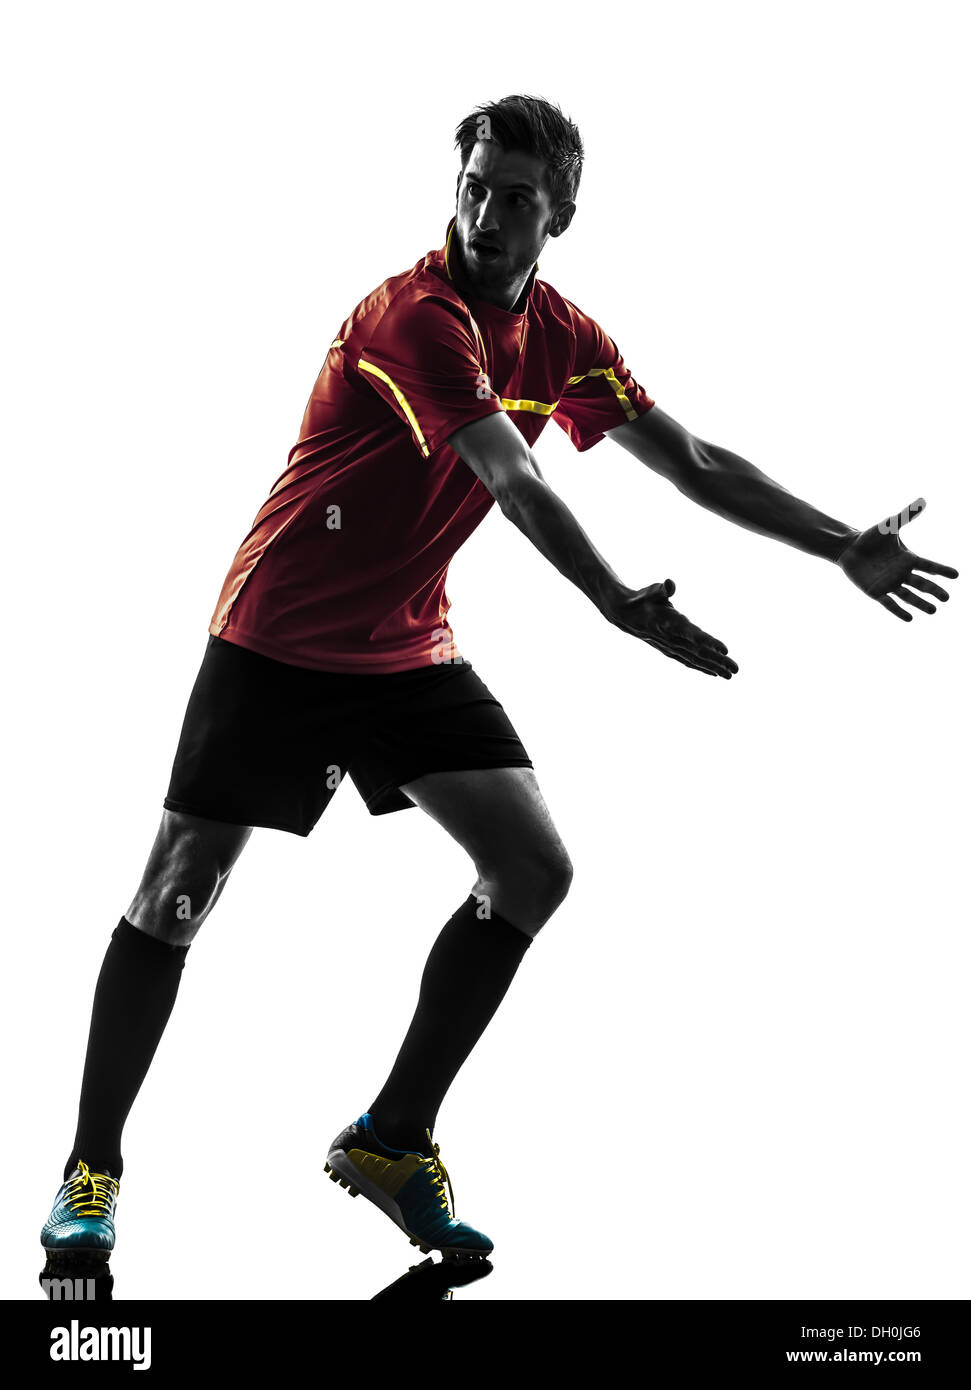 one man soccer player complaining playing football competition in silhouette on white background - Stock Image